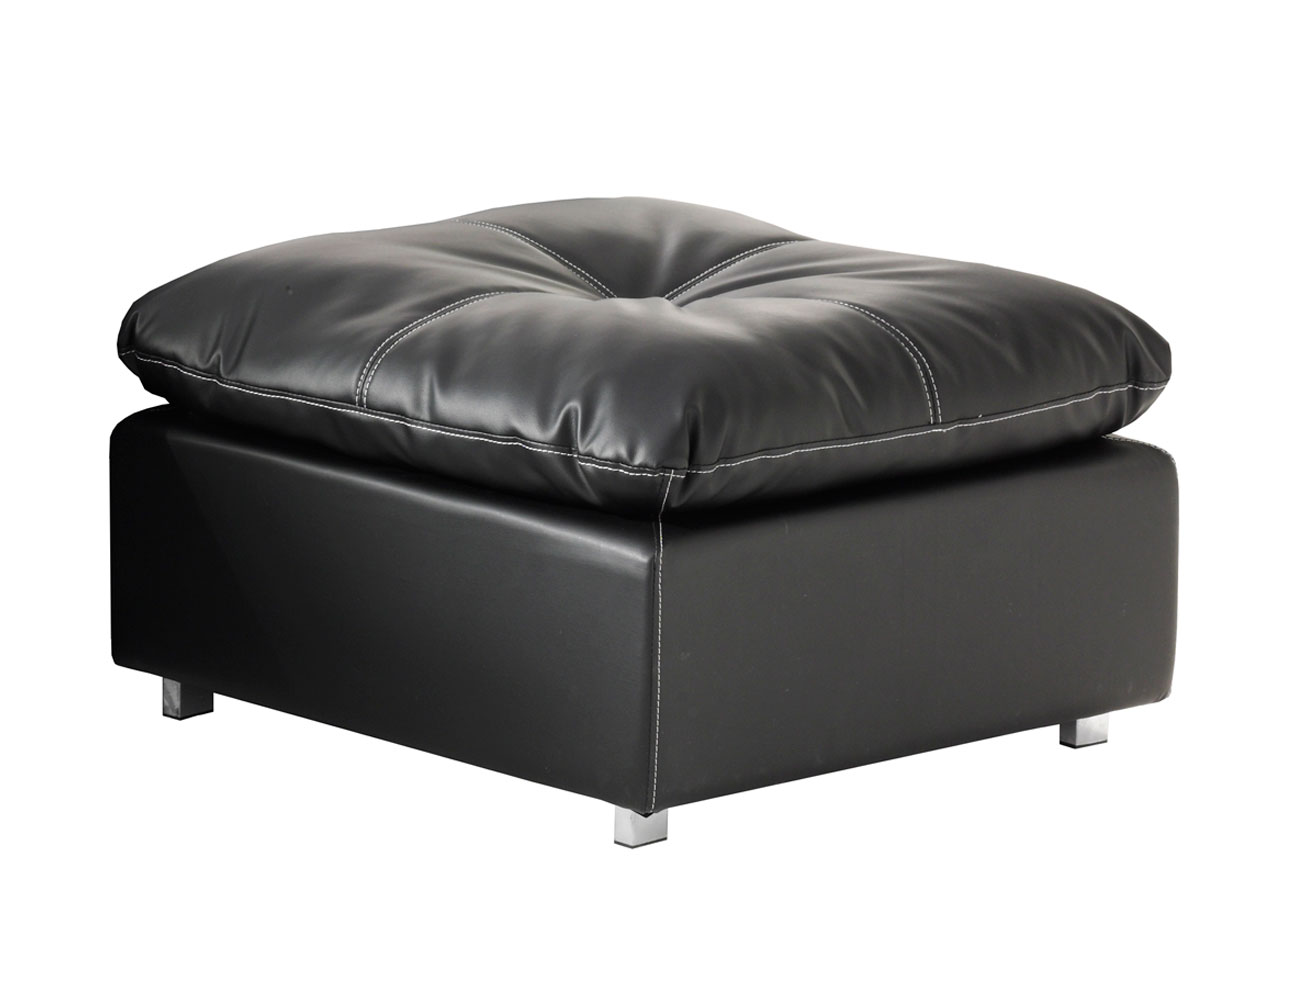 Puf sofa cama reversible1